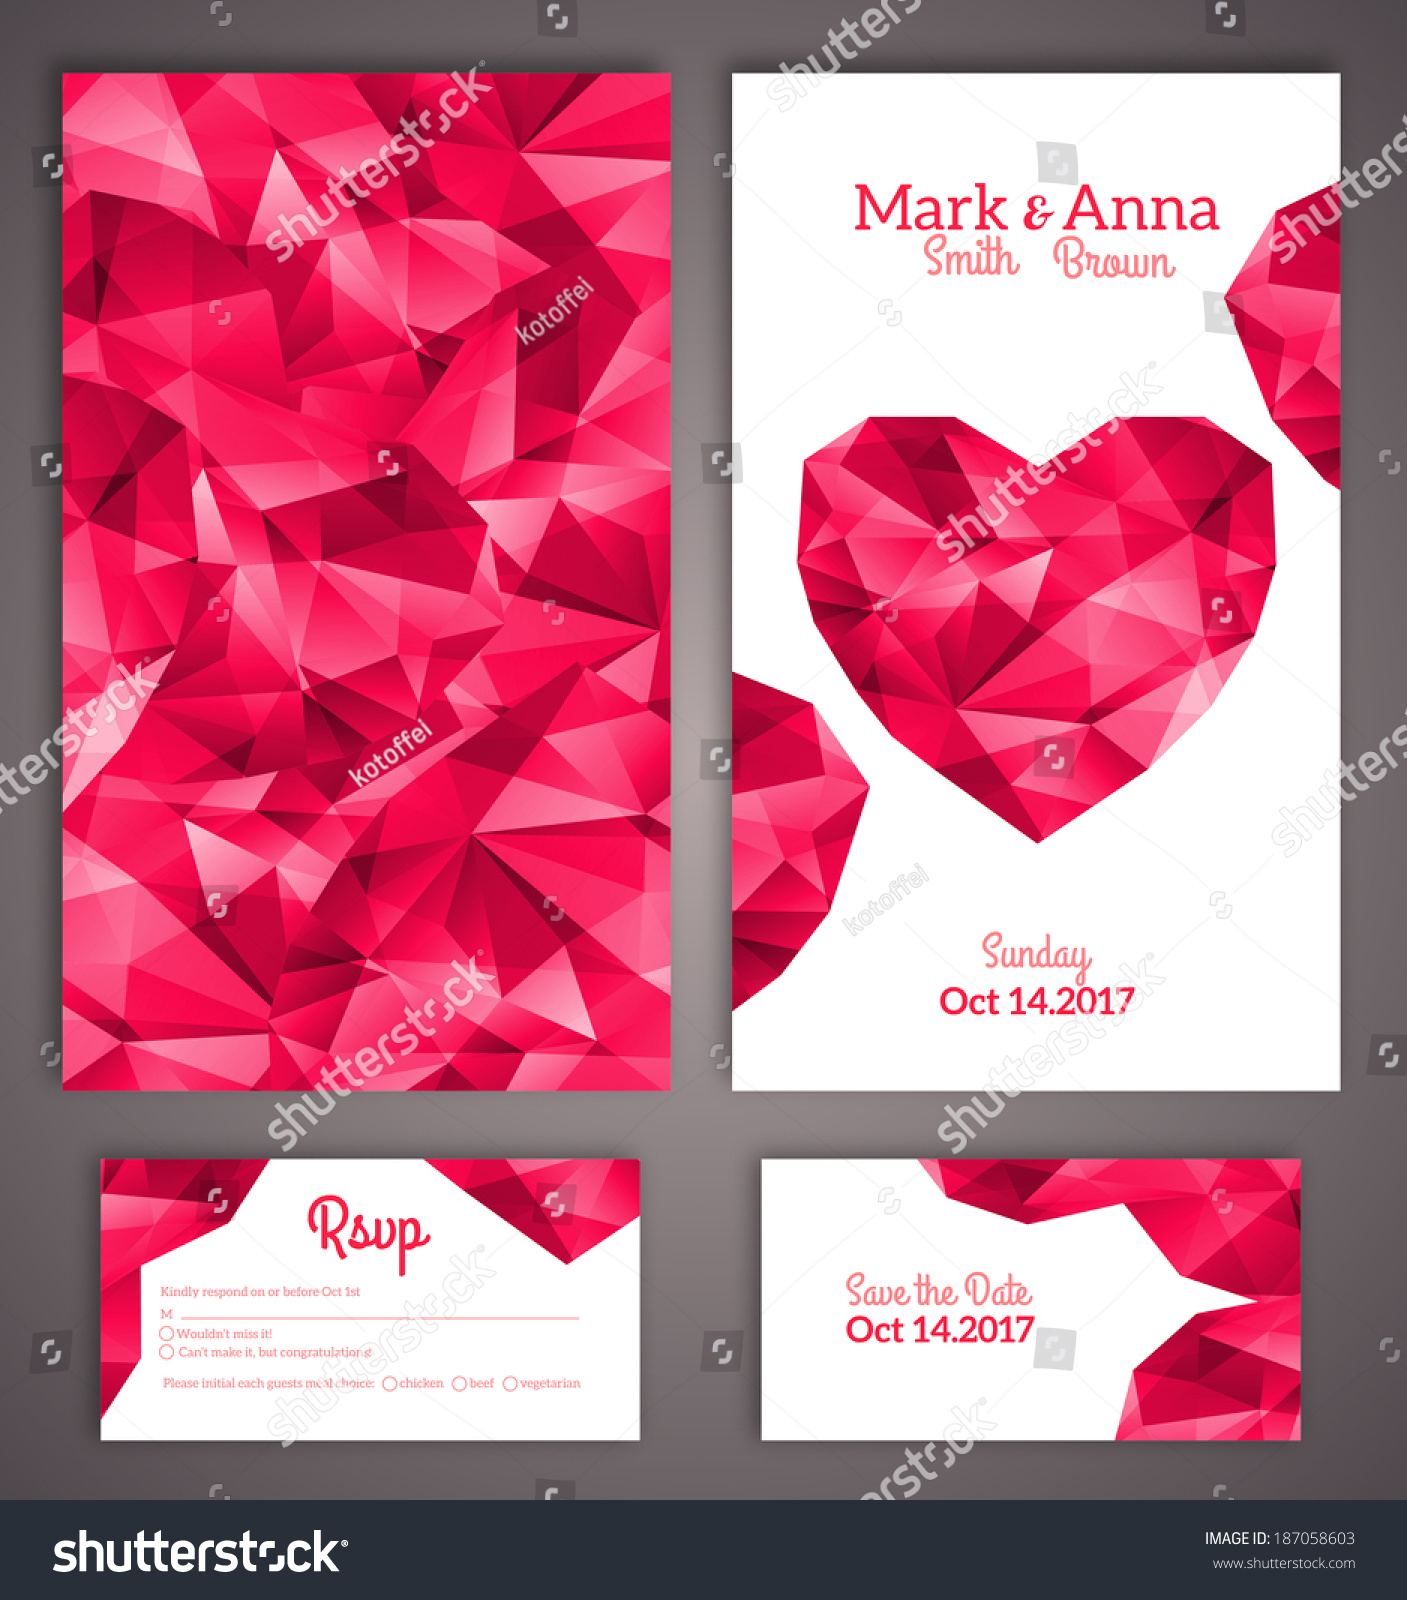 Wedding Invitation Cards Template Abstract Polygonal Stock Vector ...